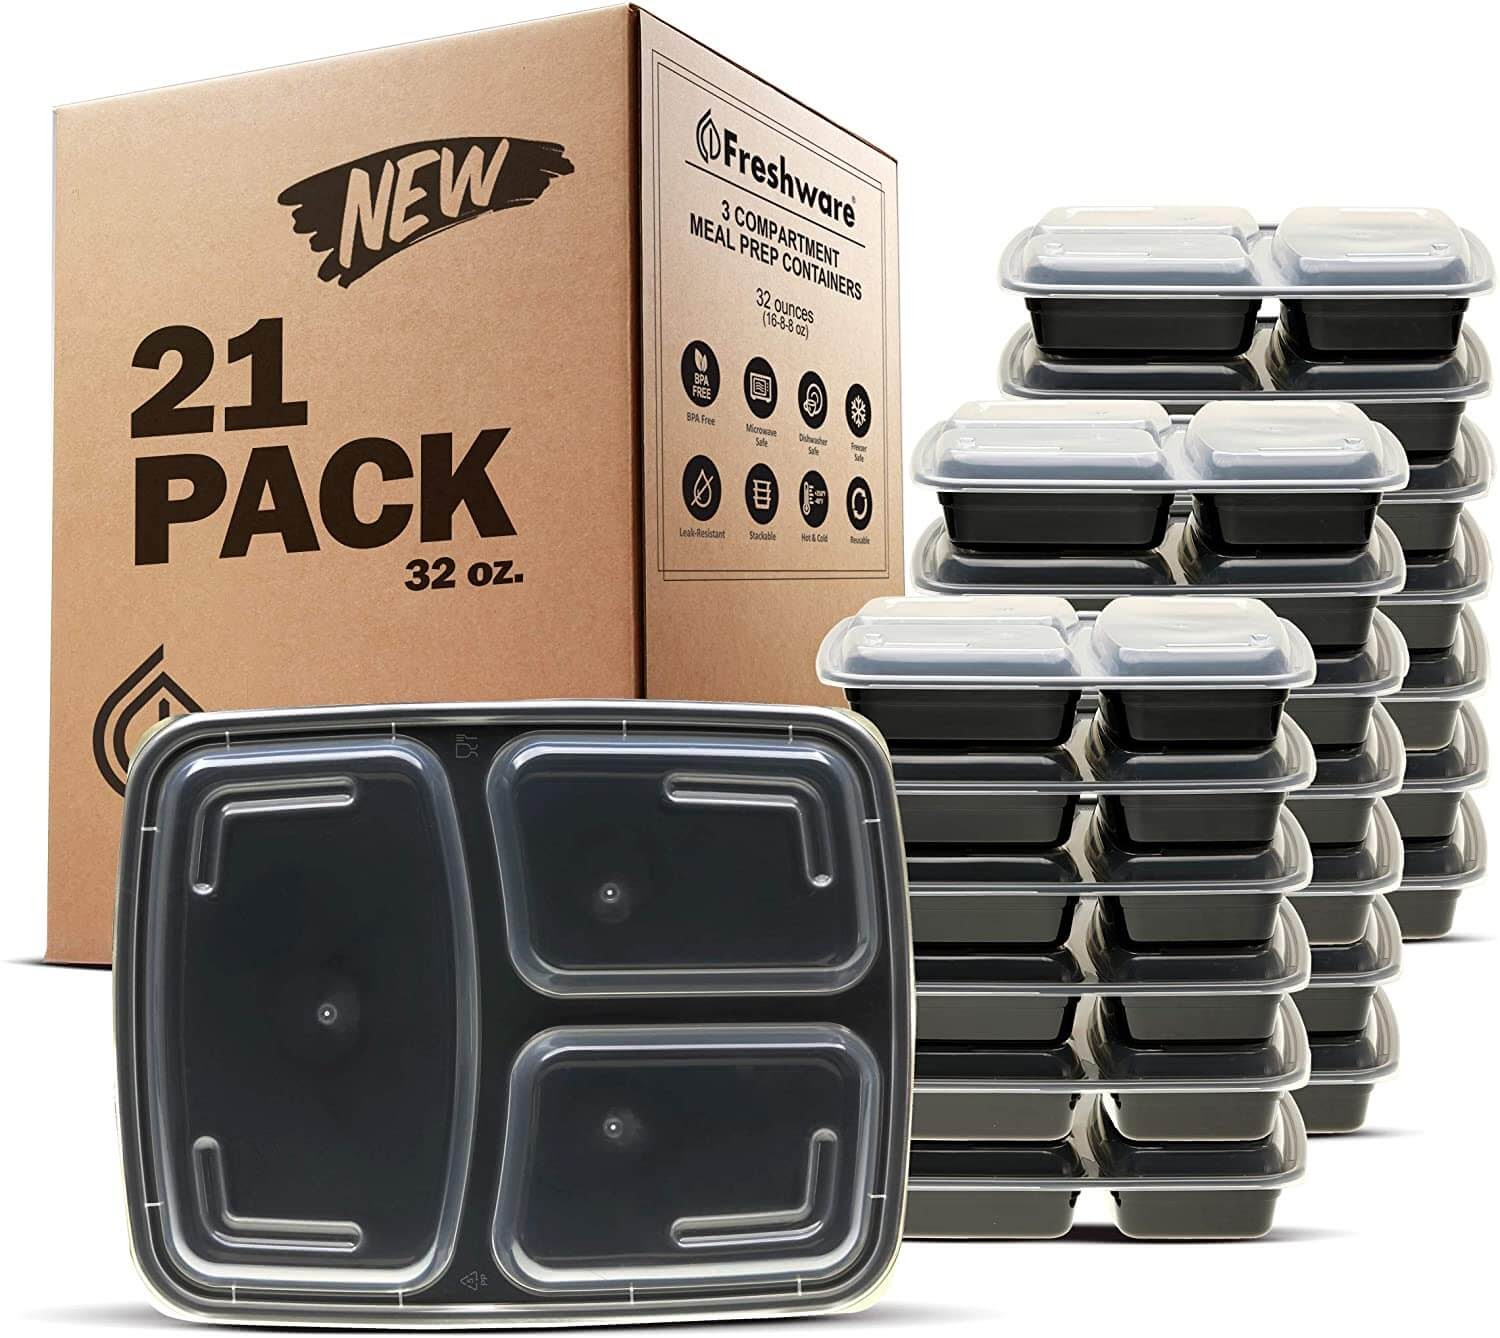 Freshware Meal Prep Container